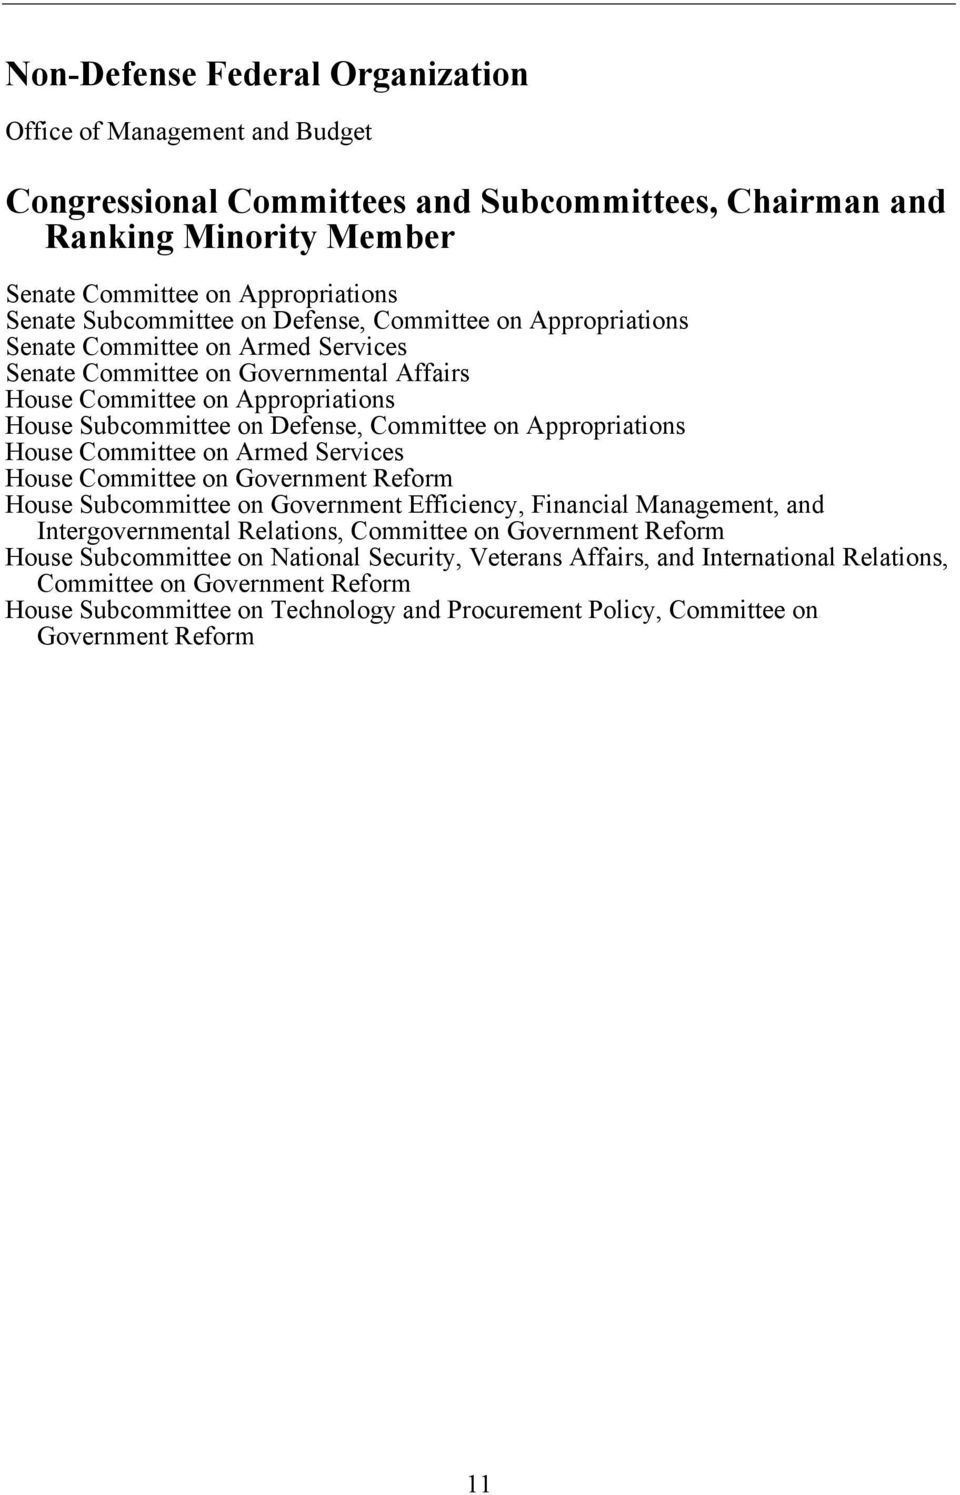 Committee on Appropriations House Committee on Armed Services House Committee on Government Reform House Subcommittee on Government Efficiency, Financial Management, and Intergovernmental Relations,